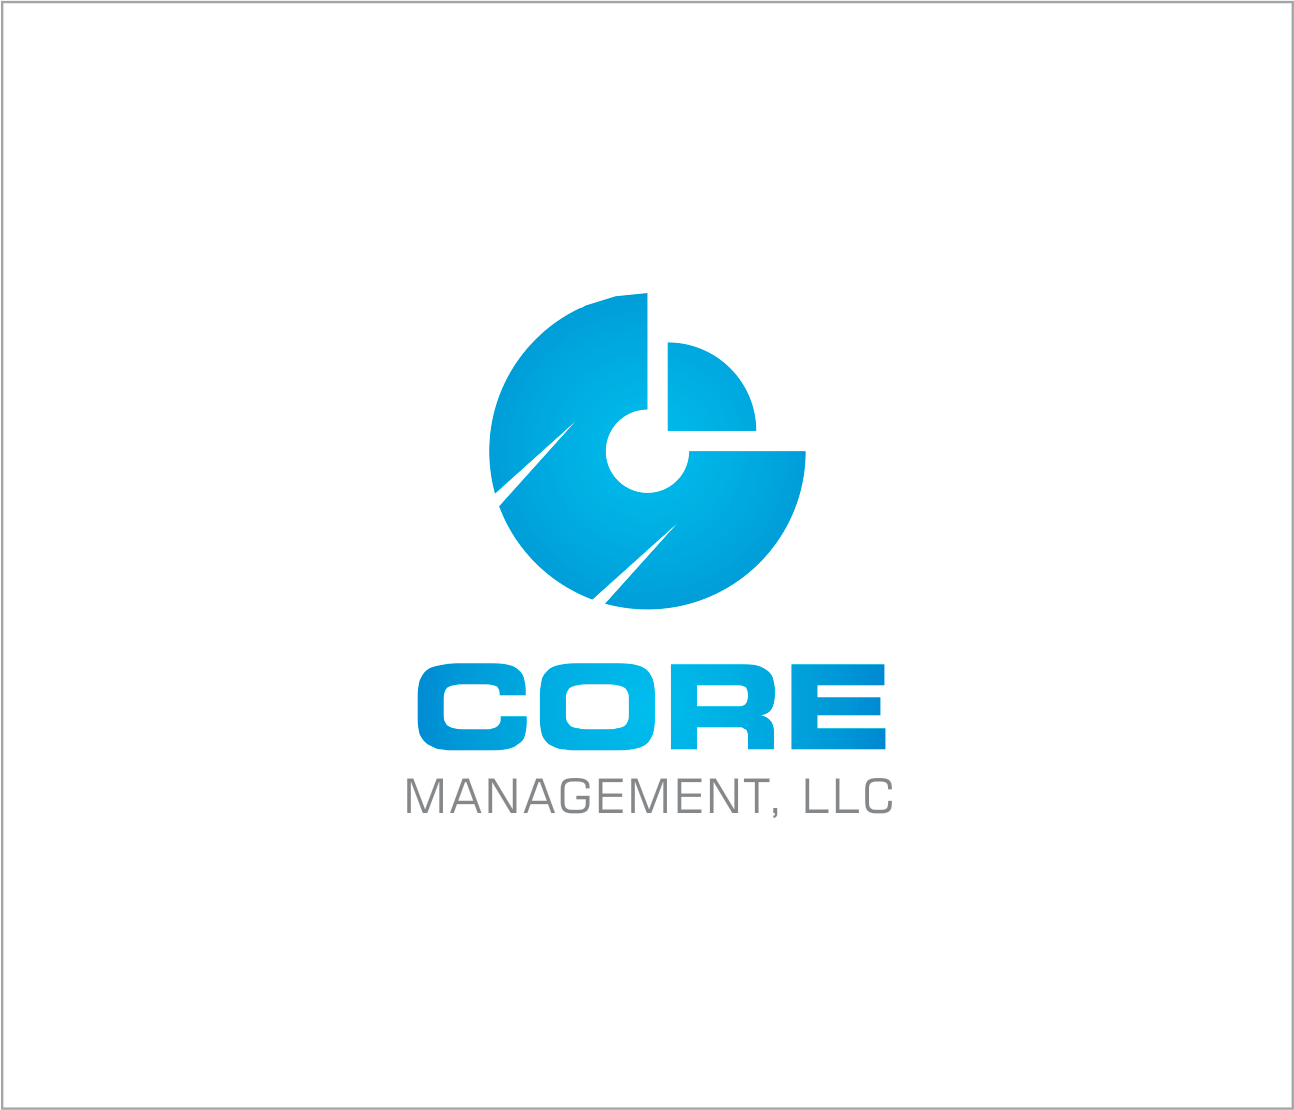 Logo Design by Armada Jamaluddin - Entry No. 115 in the Logo Design Contest Creative Logo Design for CORE Management, LLC.